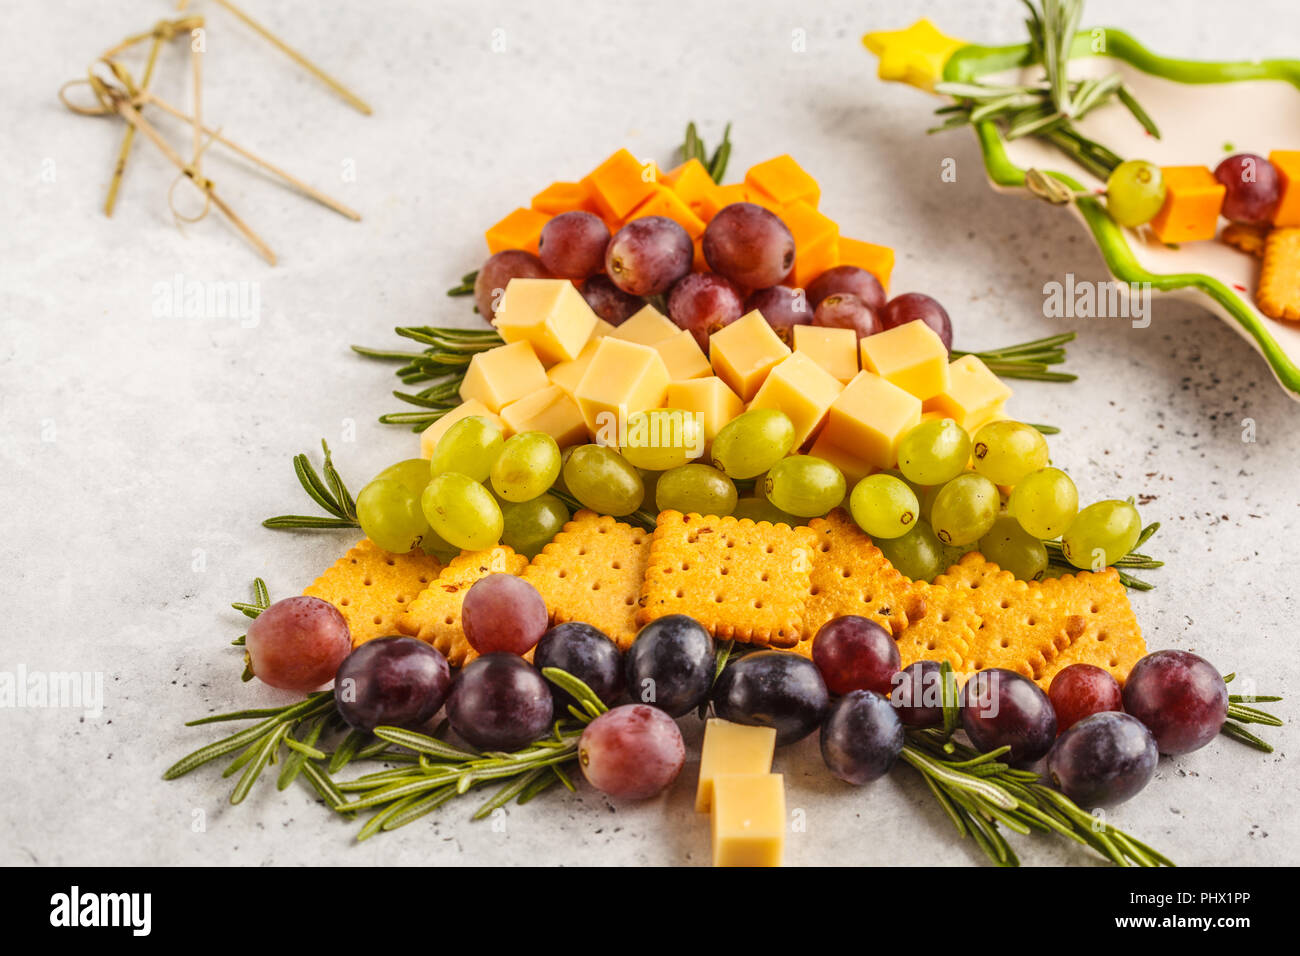 Christmas tree from appetizers: cheese, grapes, crackers. Christmas food concept, white background. - Stock Image